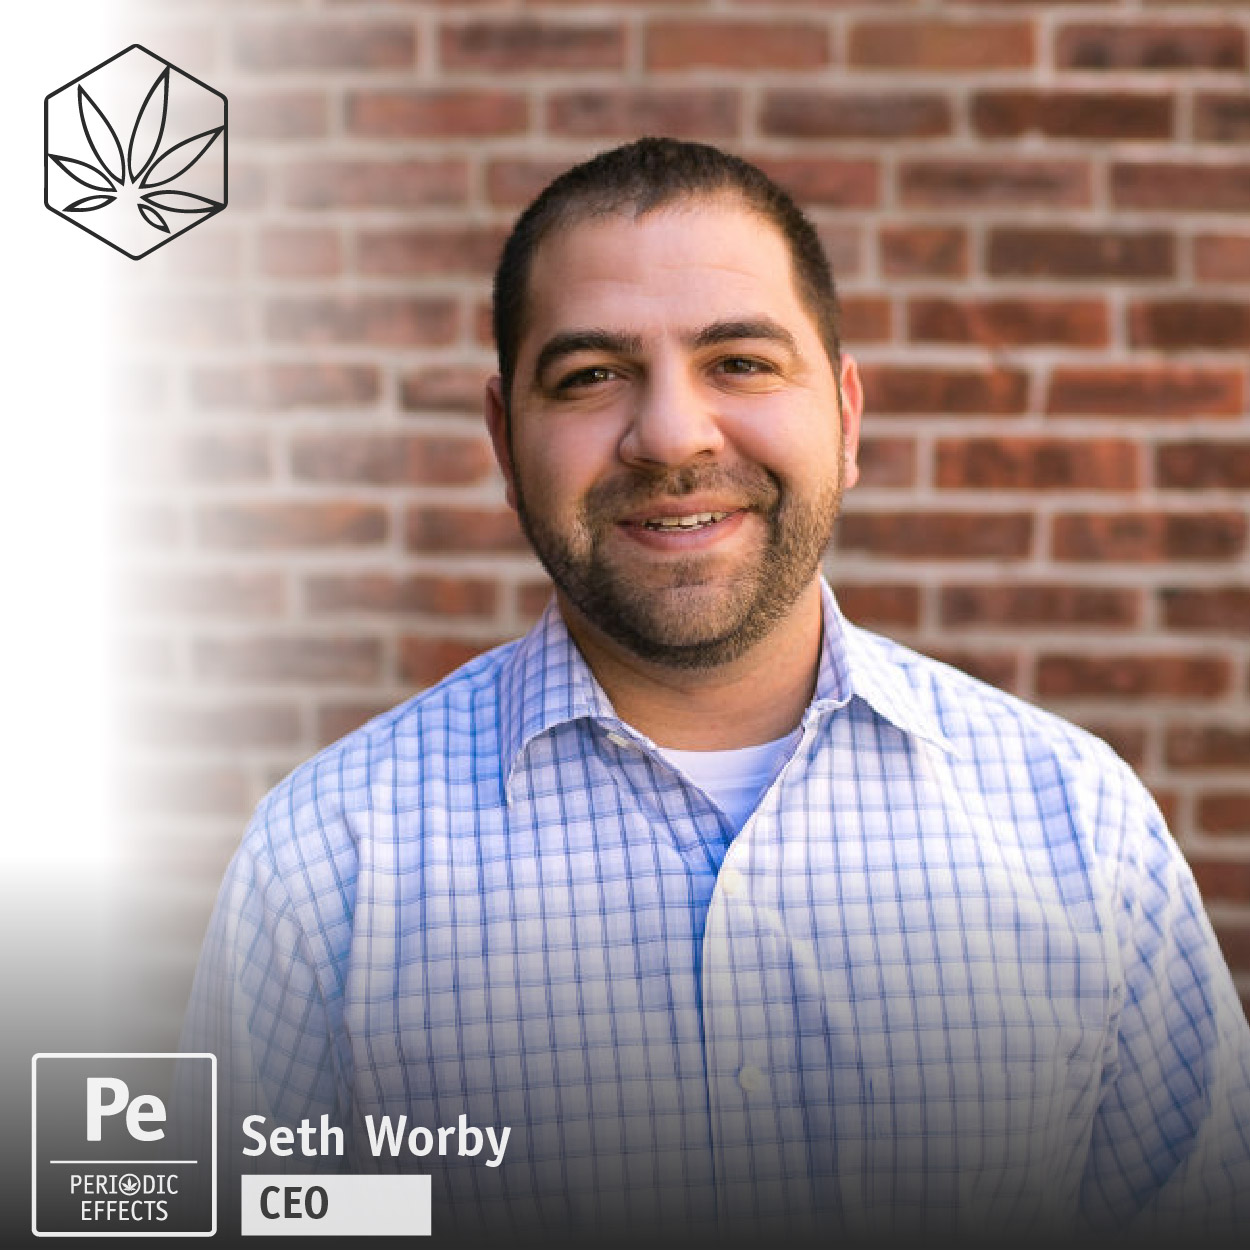 Seth Worby, CEO of Cannabis Creative Group in Periodic Effects Podcast Episode E049: How to Position your Cannabis Brand